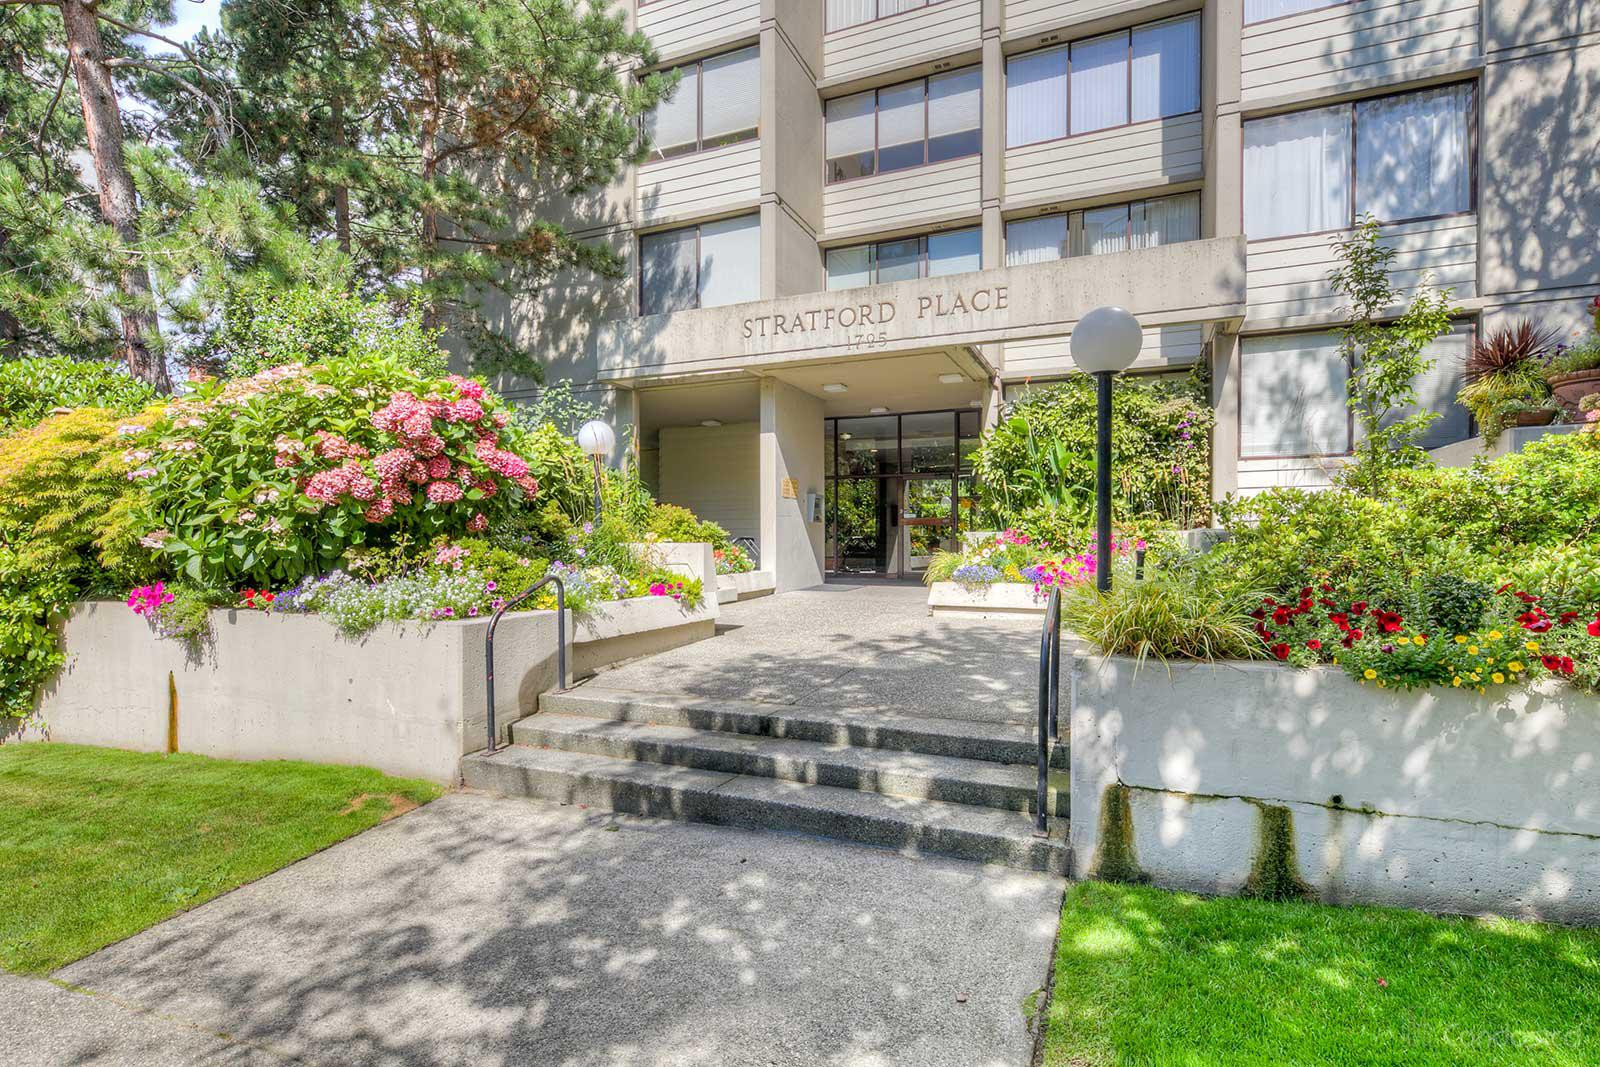 Stratford Place at 1725 Pendrell St, Vancouver 0